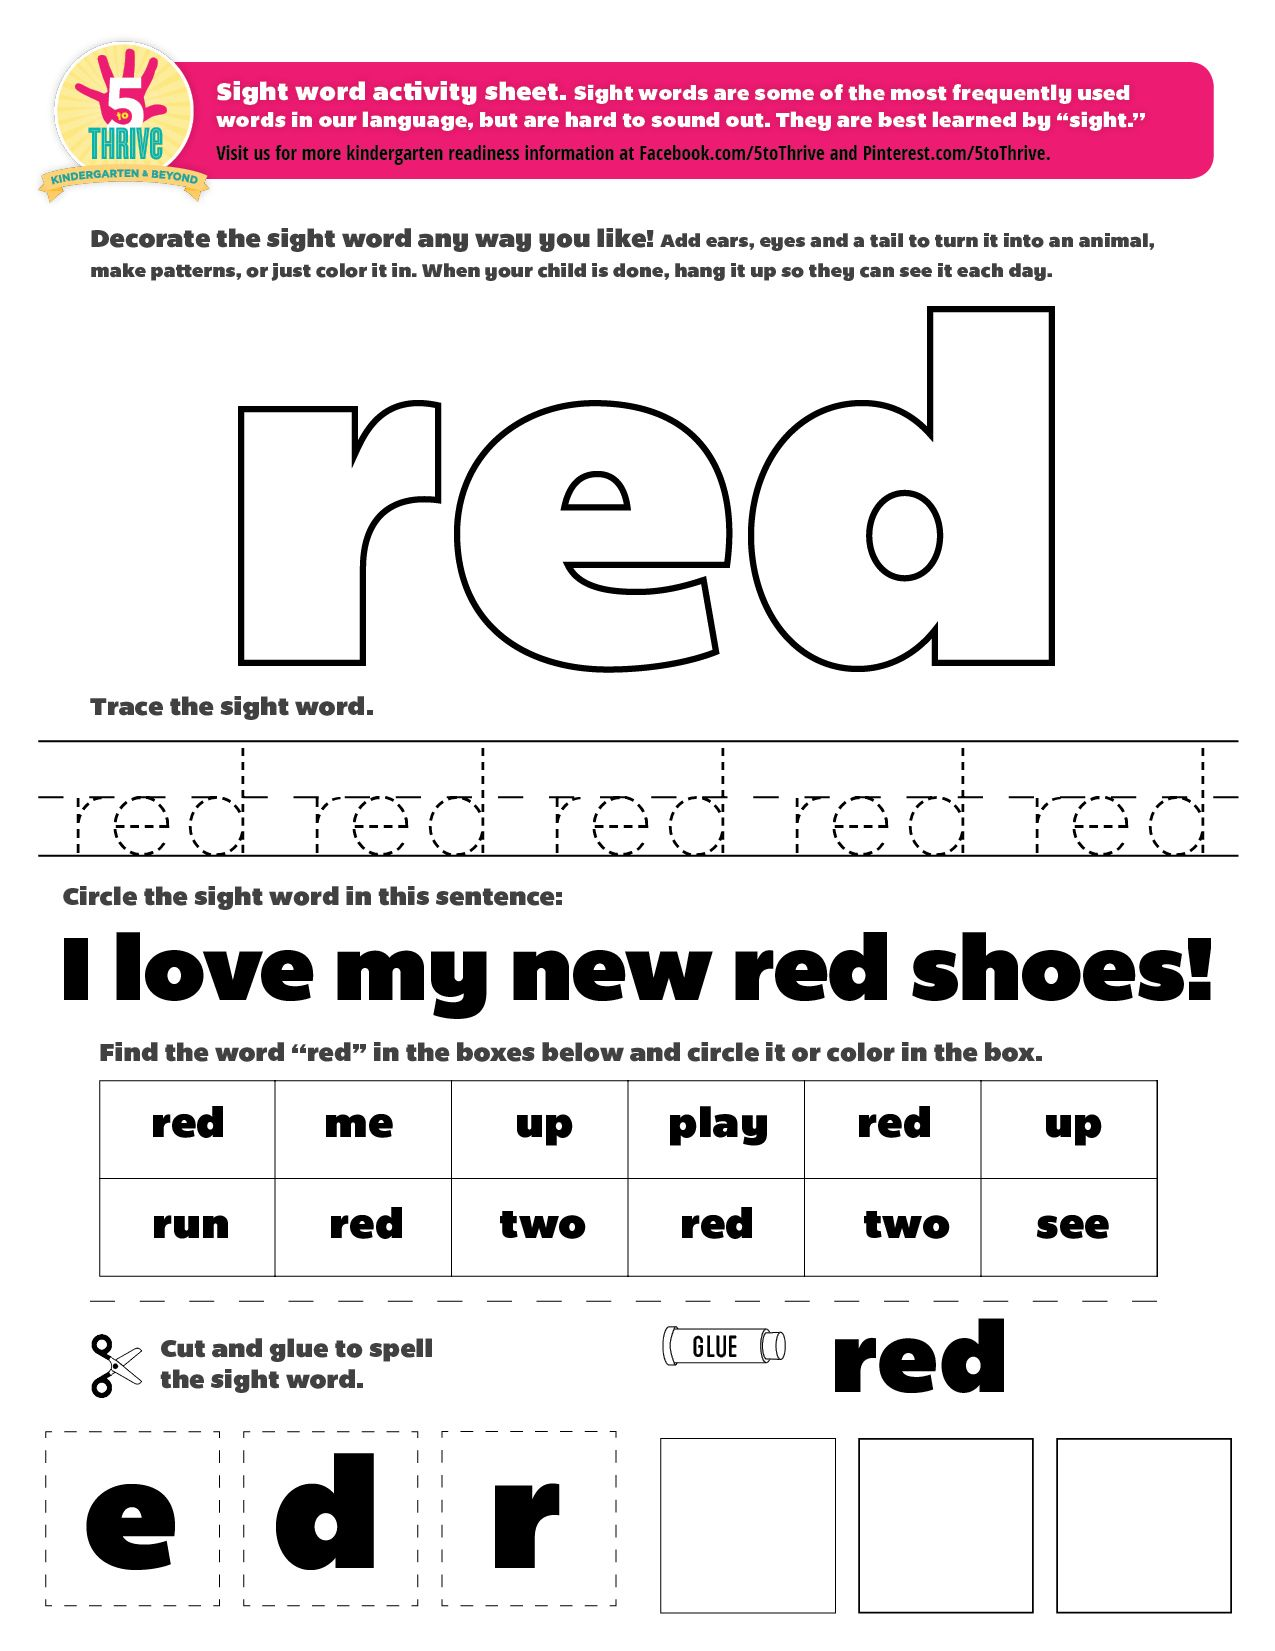 The Sight Word This Week Is Red Sight Words Are Some Of